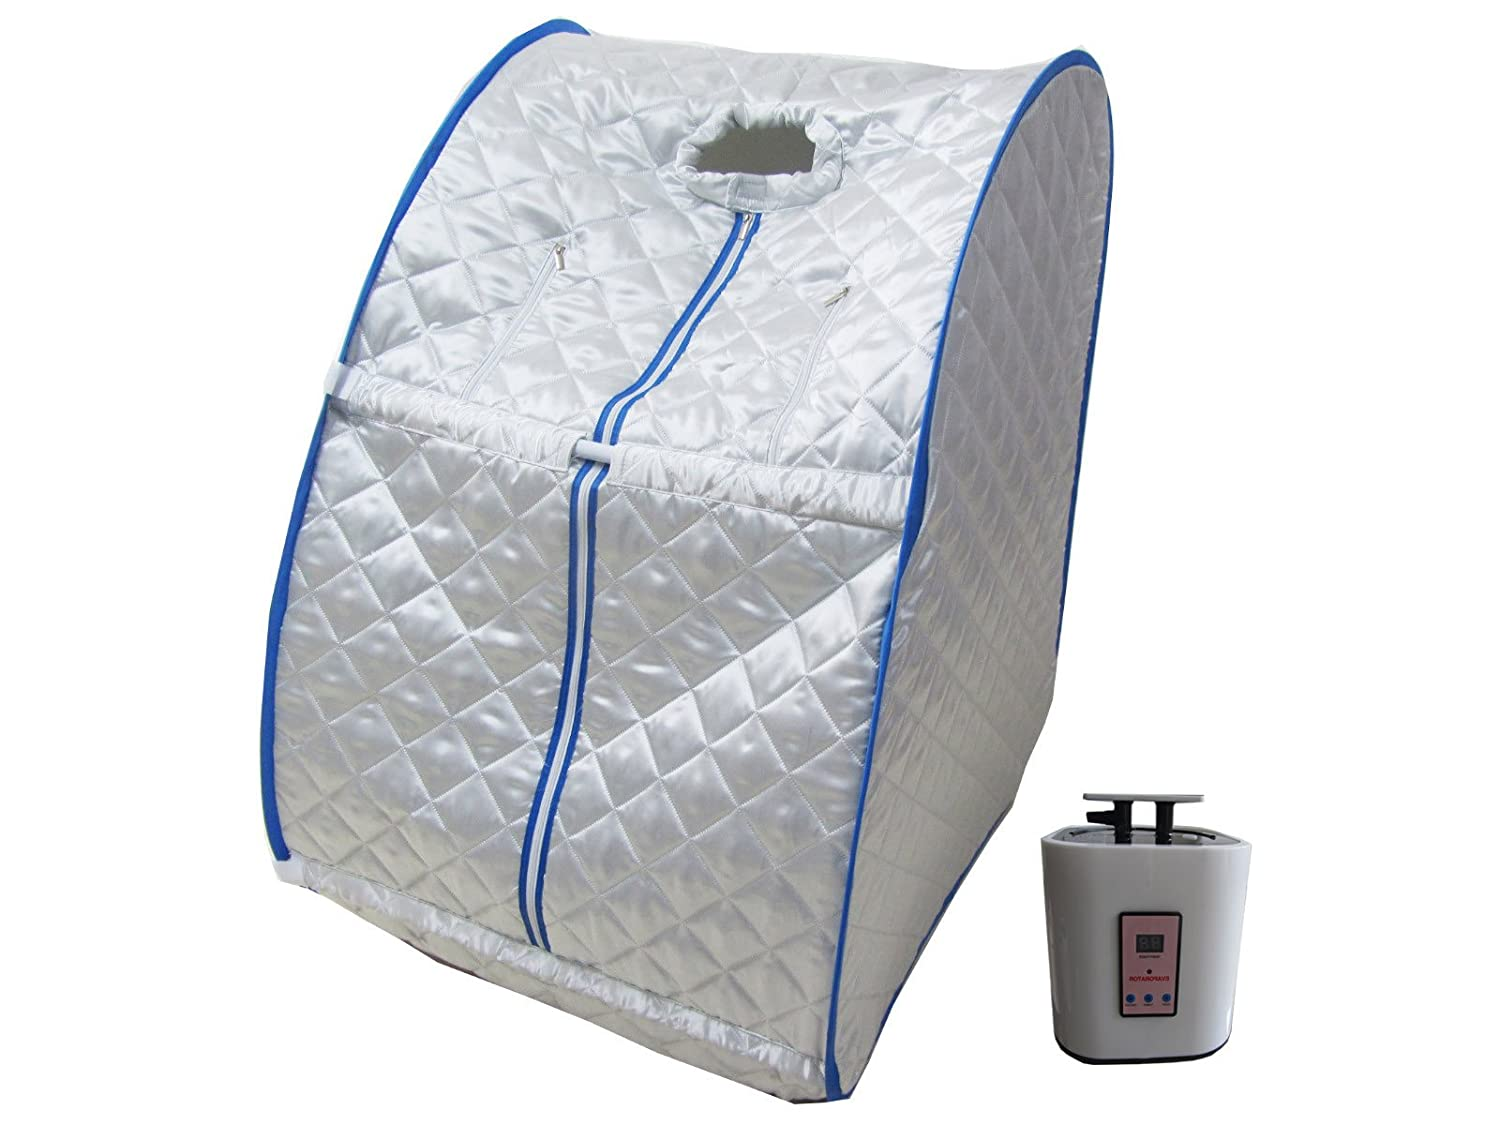 Portable Therapeutic Steam Sauna Spa Detox-Weight Loss, SS01